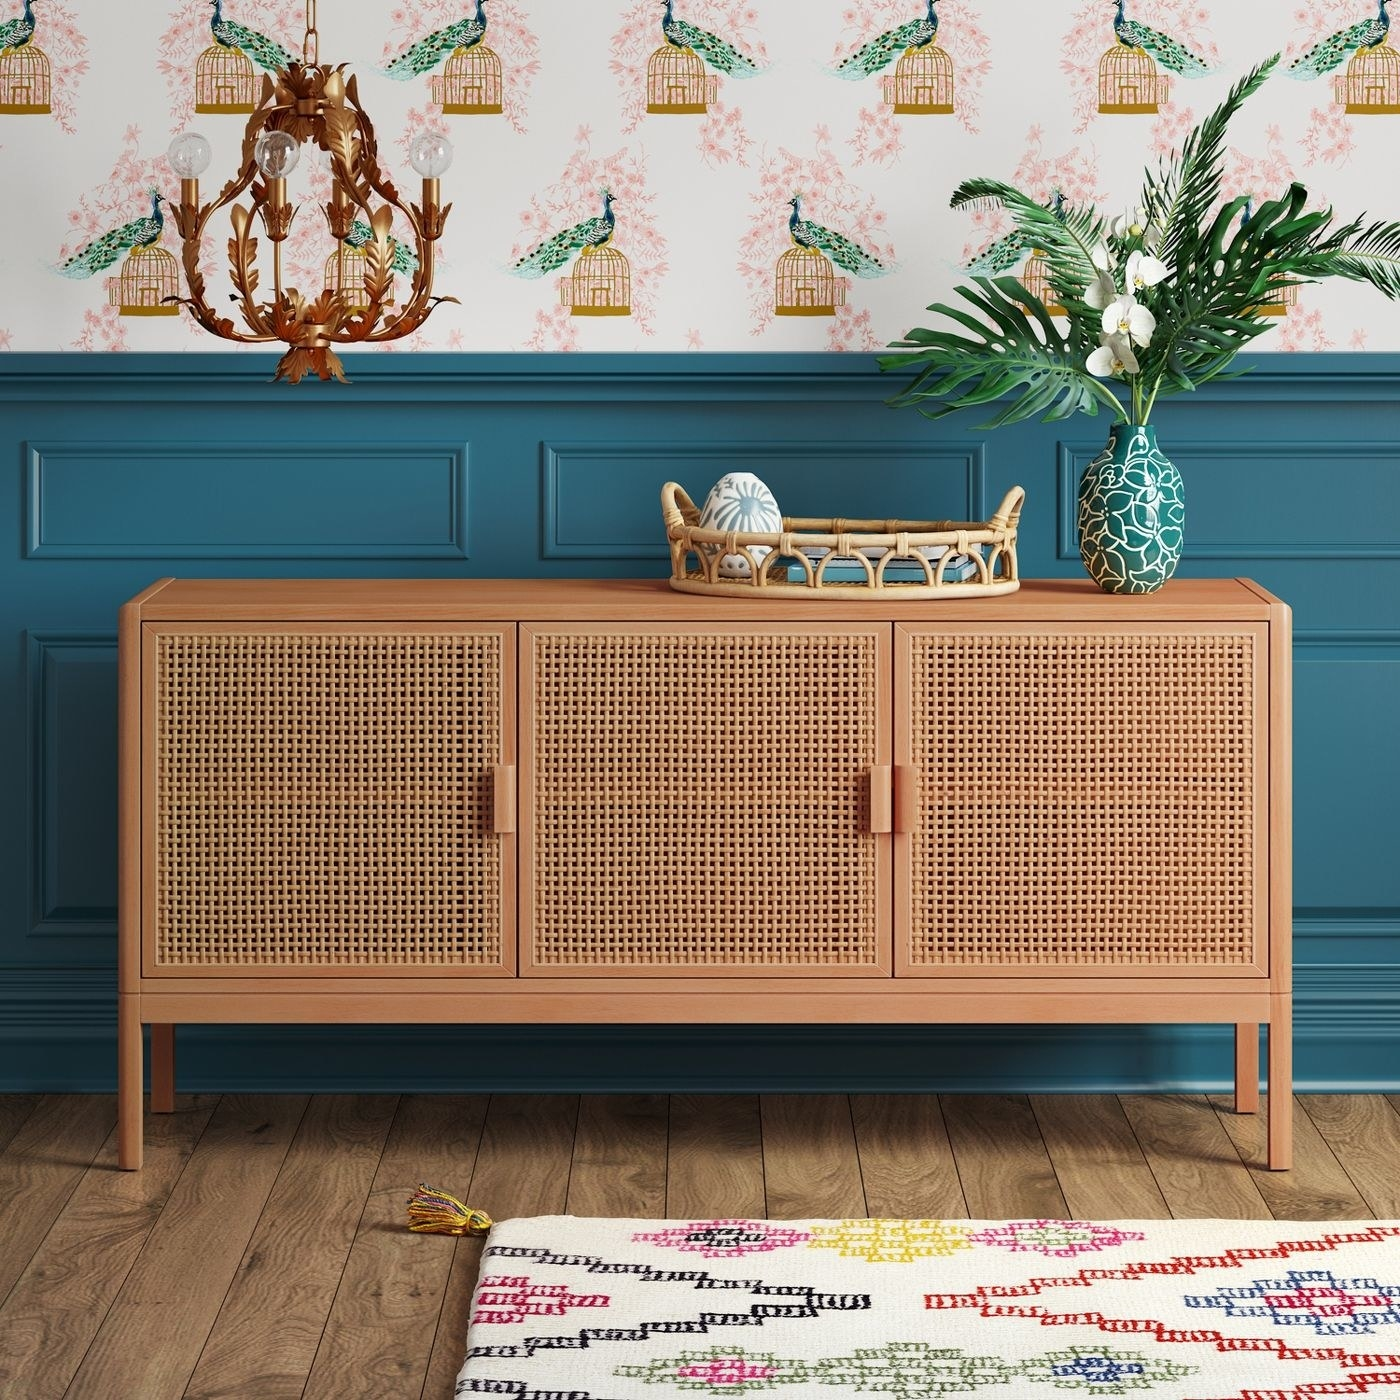 the rattan tv stand in natural brown against a teal wall